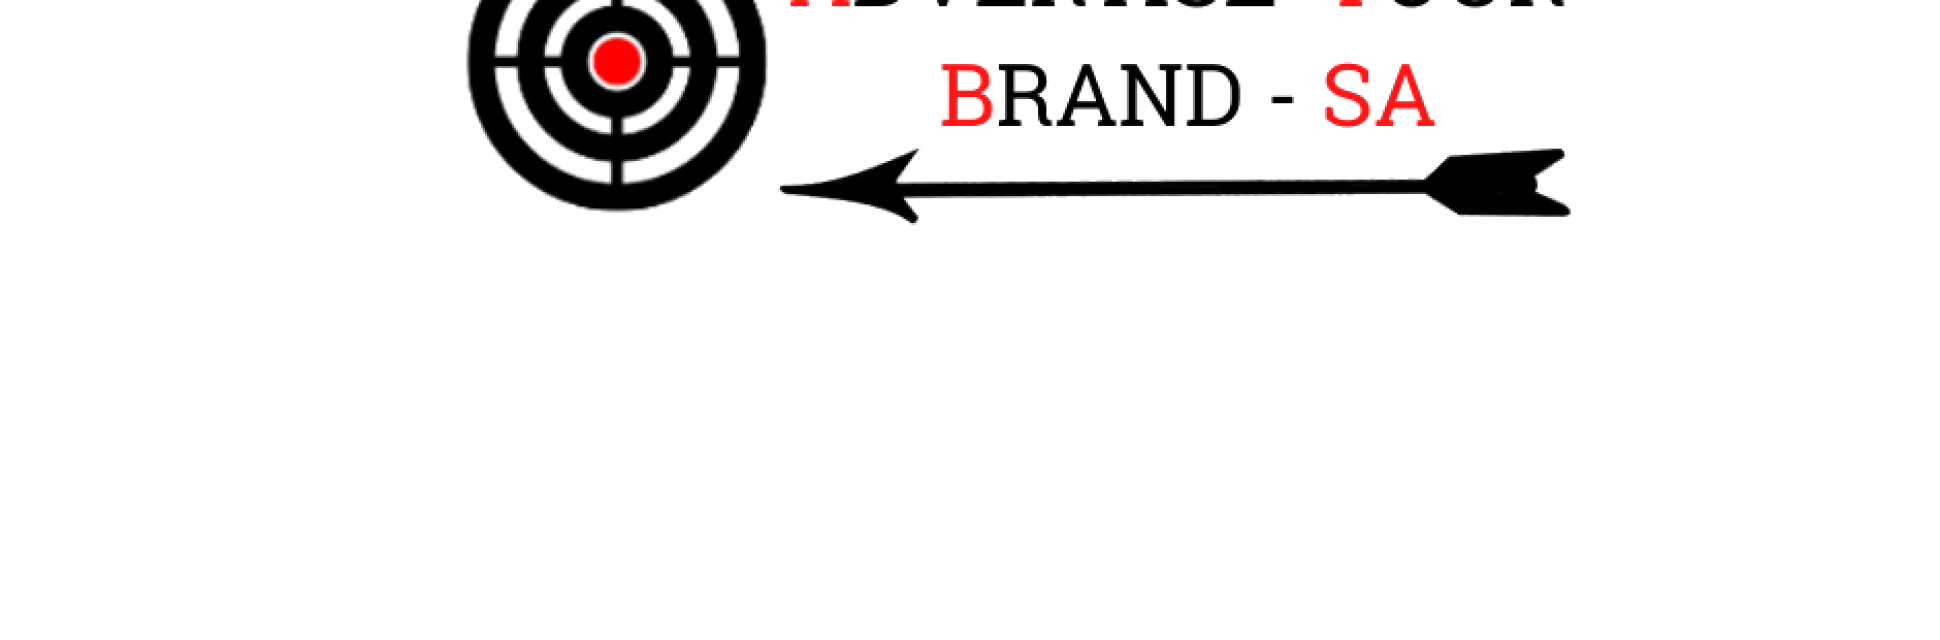 Advertise Your Brand_Logo_PNG